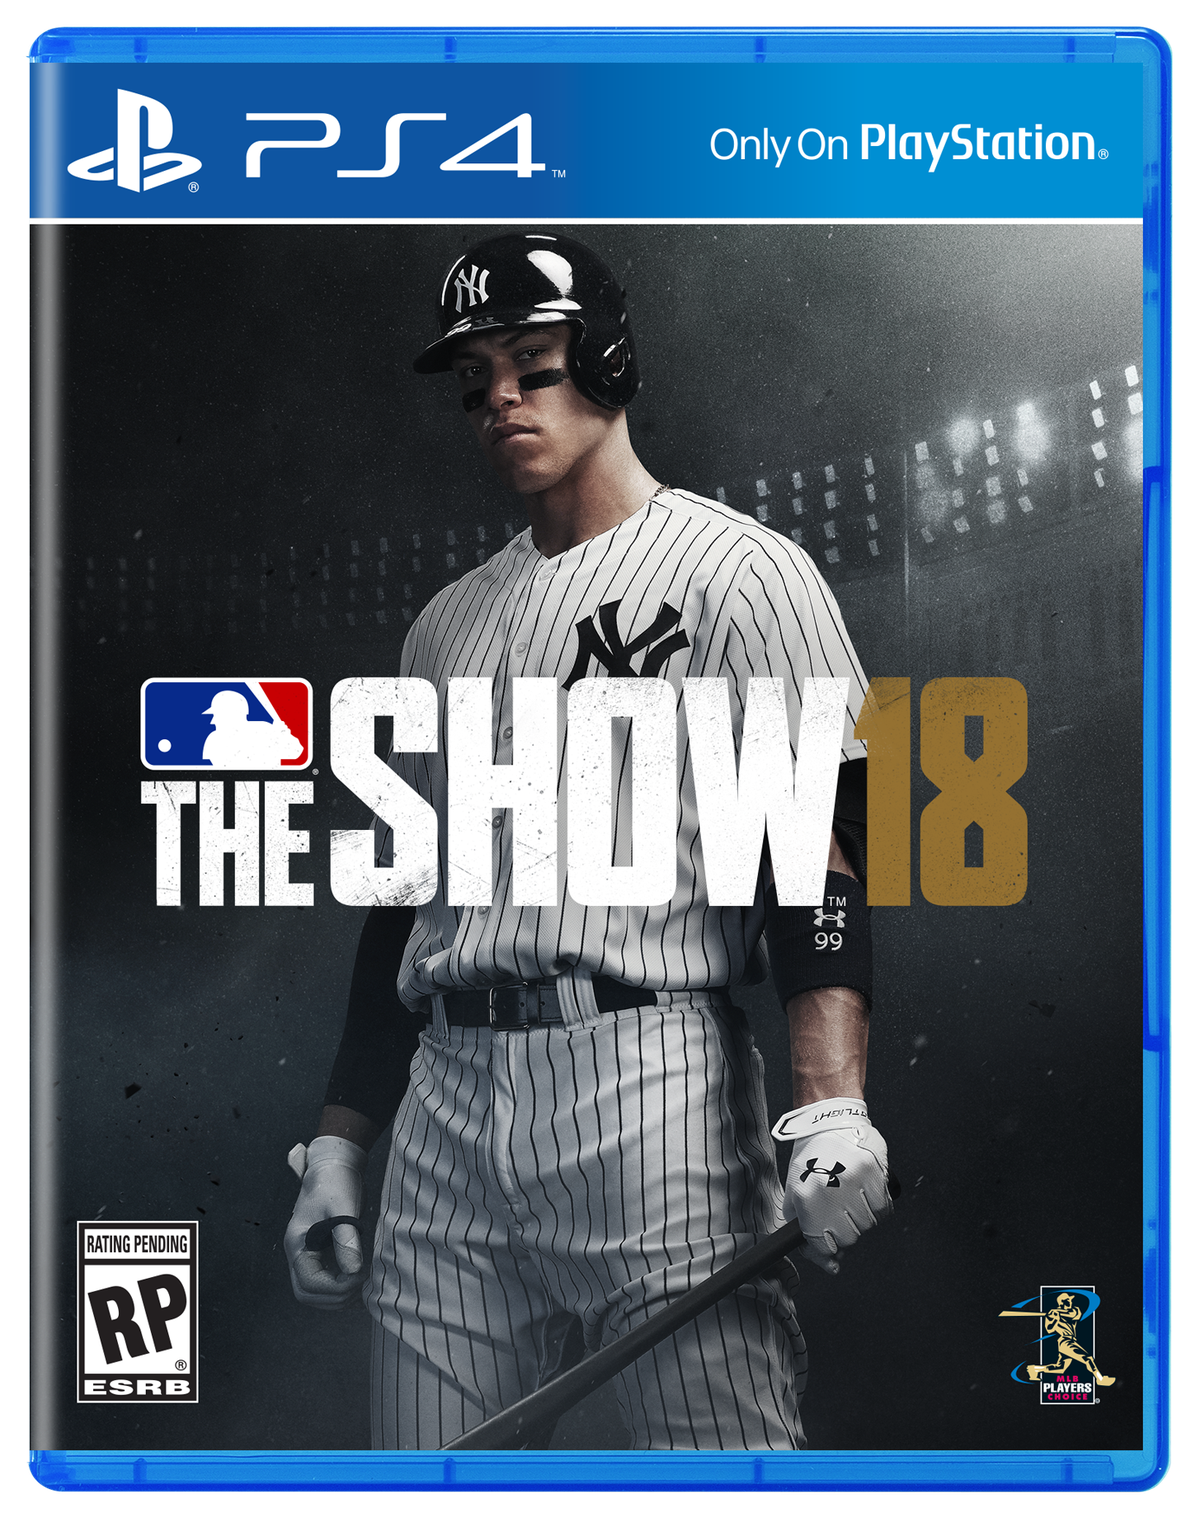 MLB The Show 18 box art with Aaron Judge